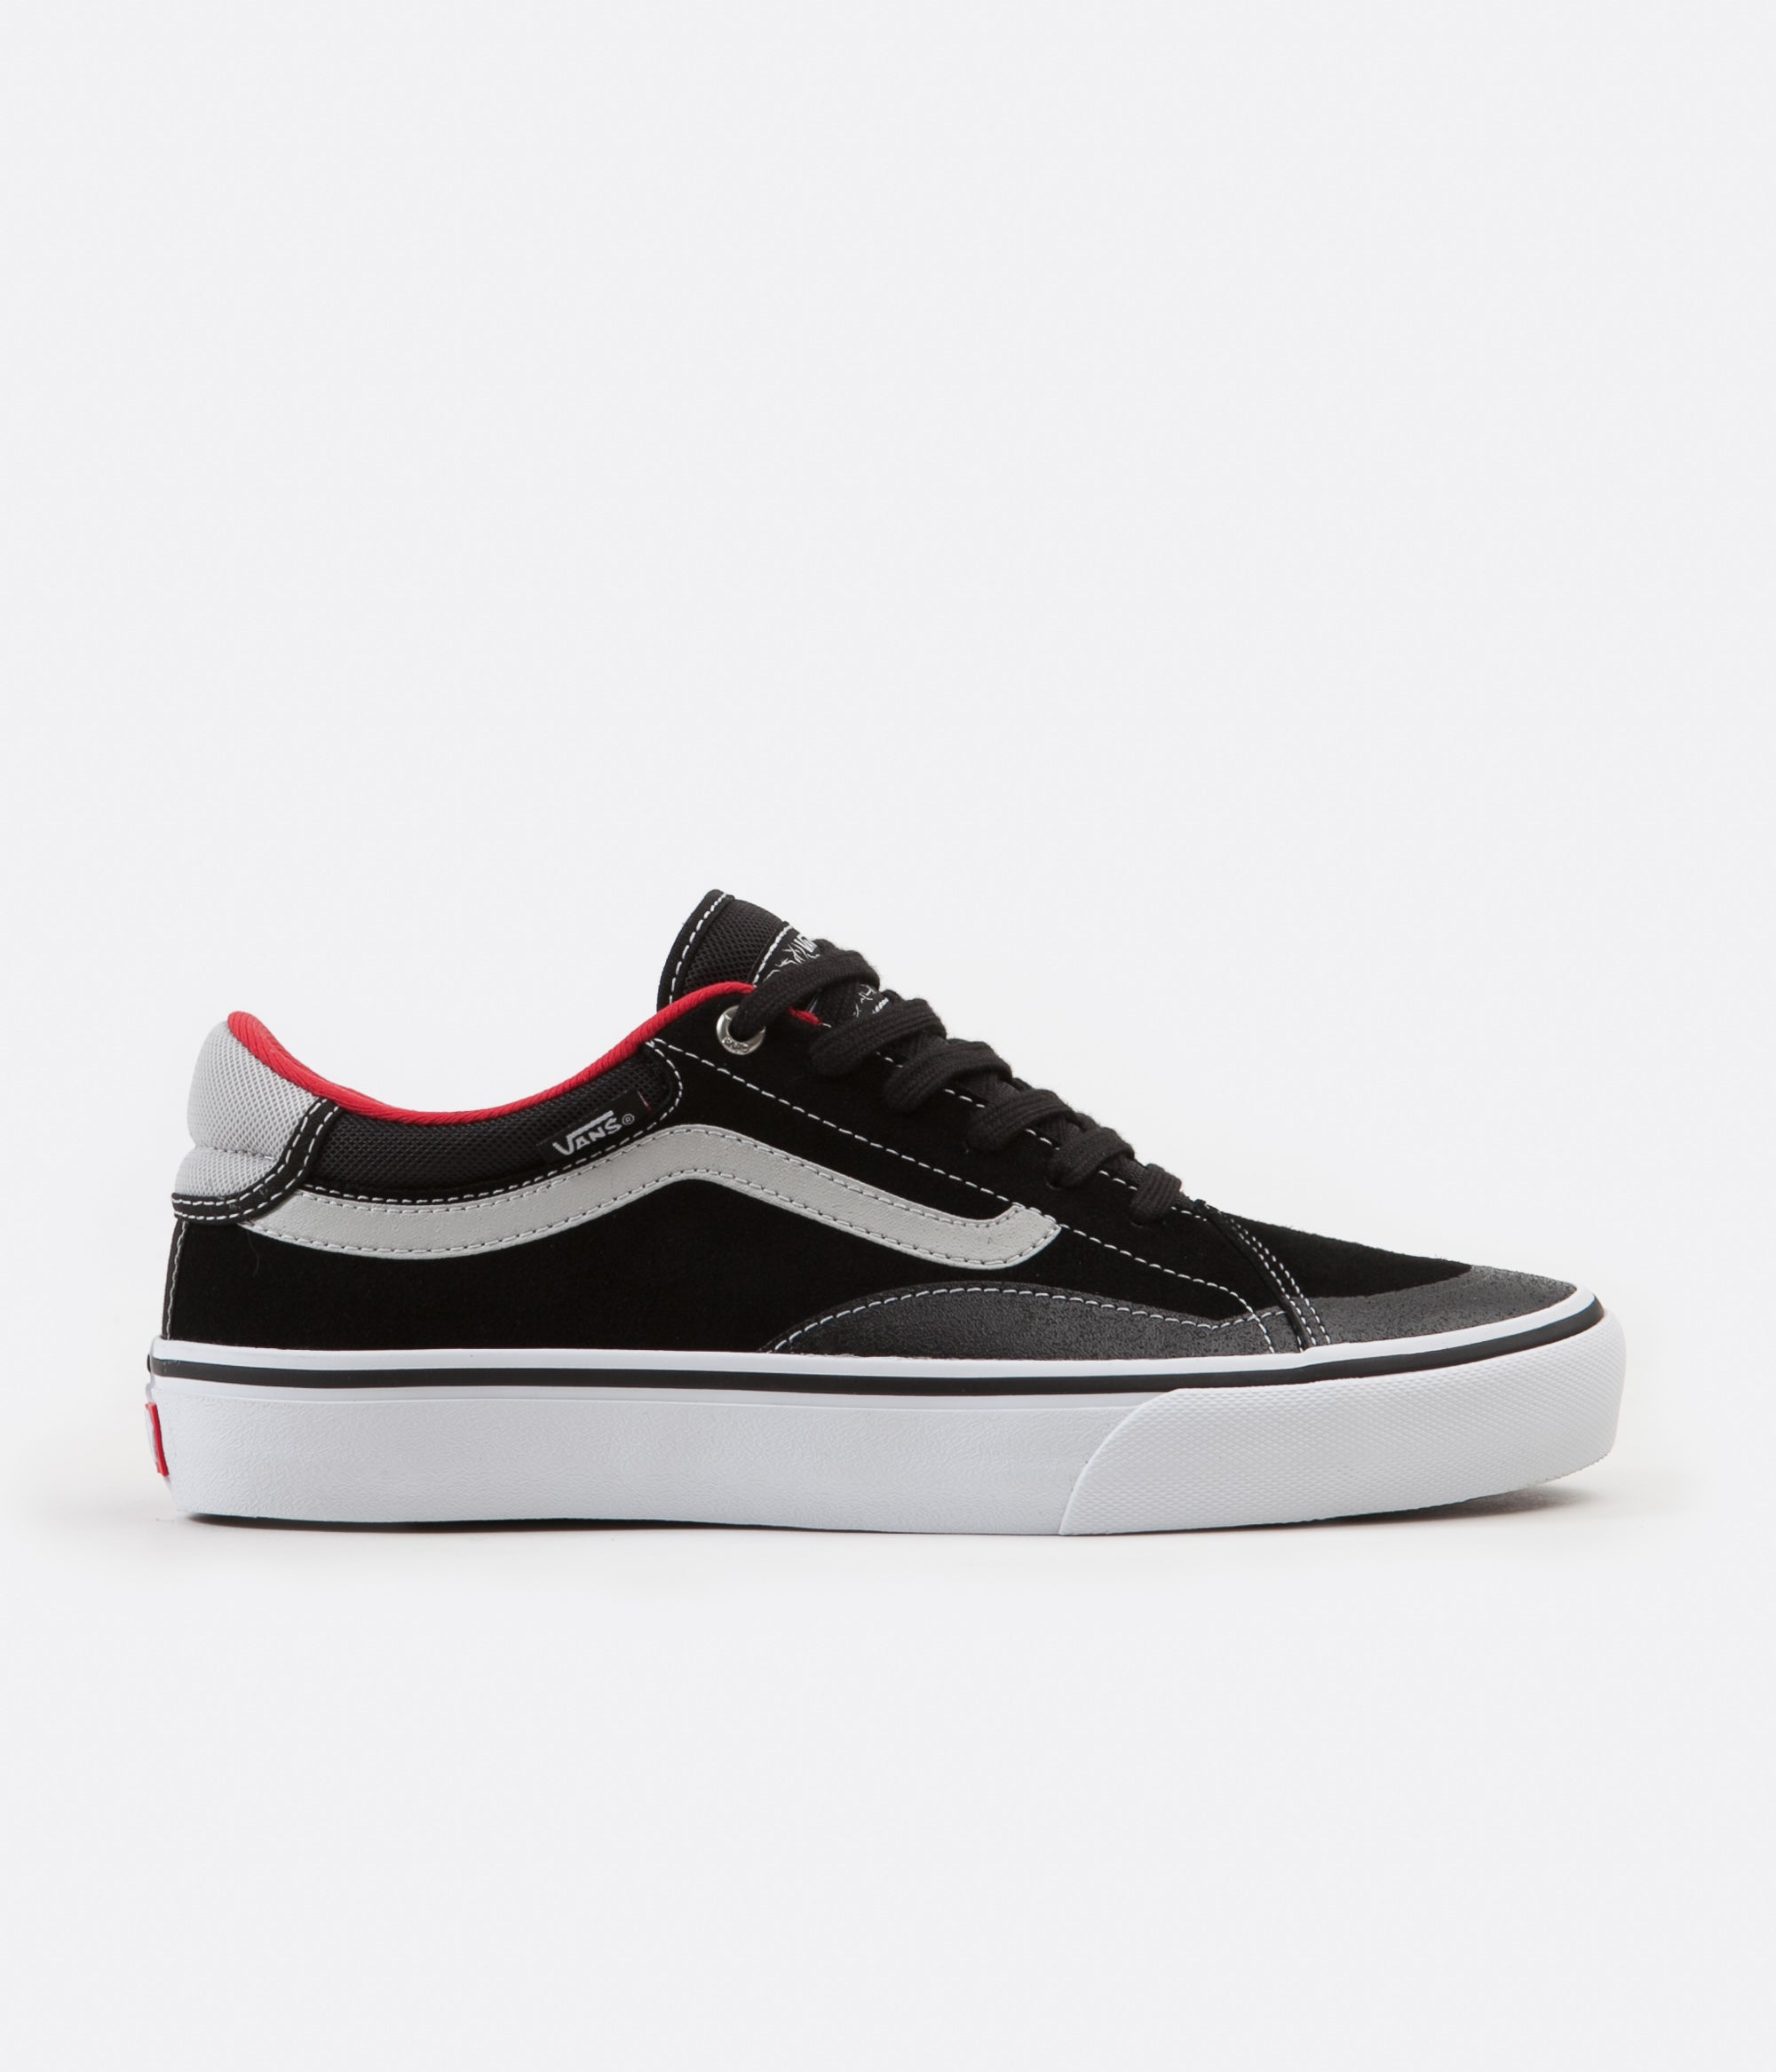 White Shoes Black Vans RedFlatspot Advanced Tnt Prototype FJTlK1c